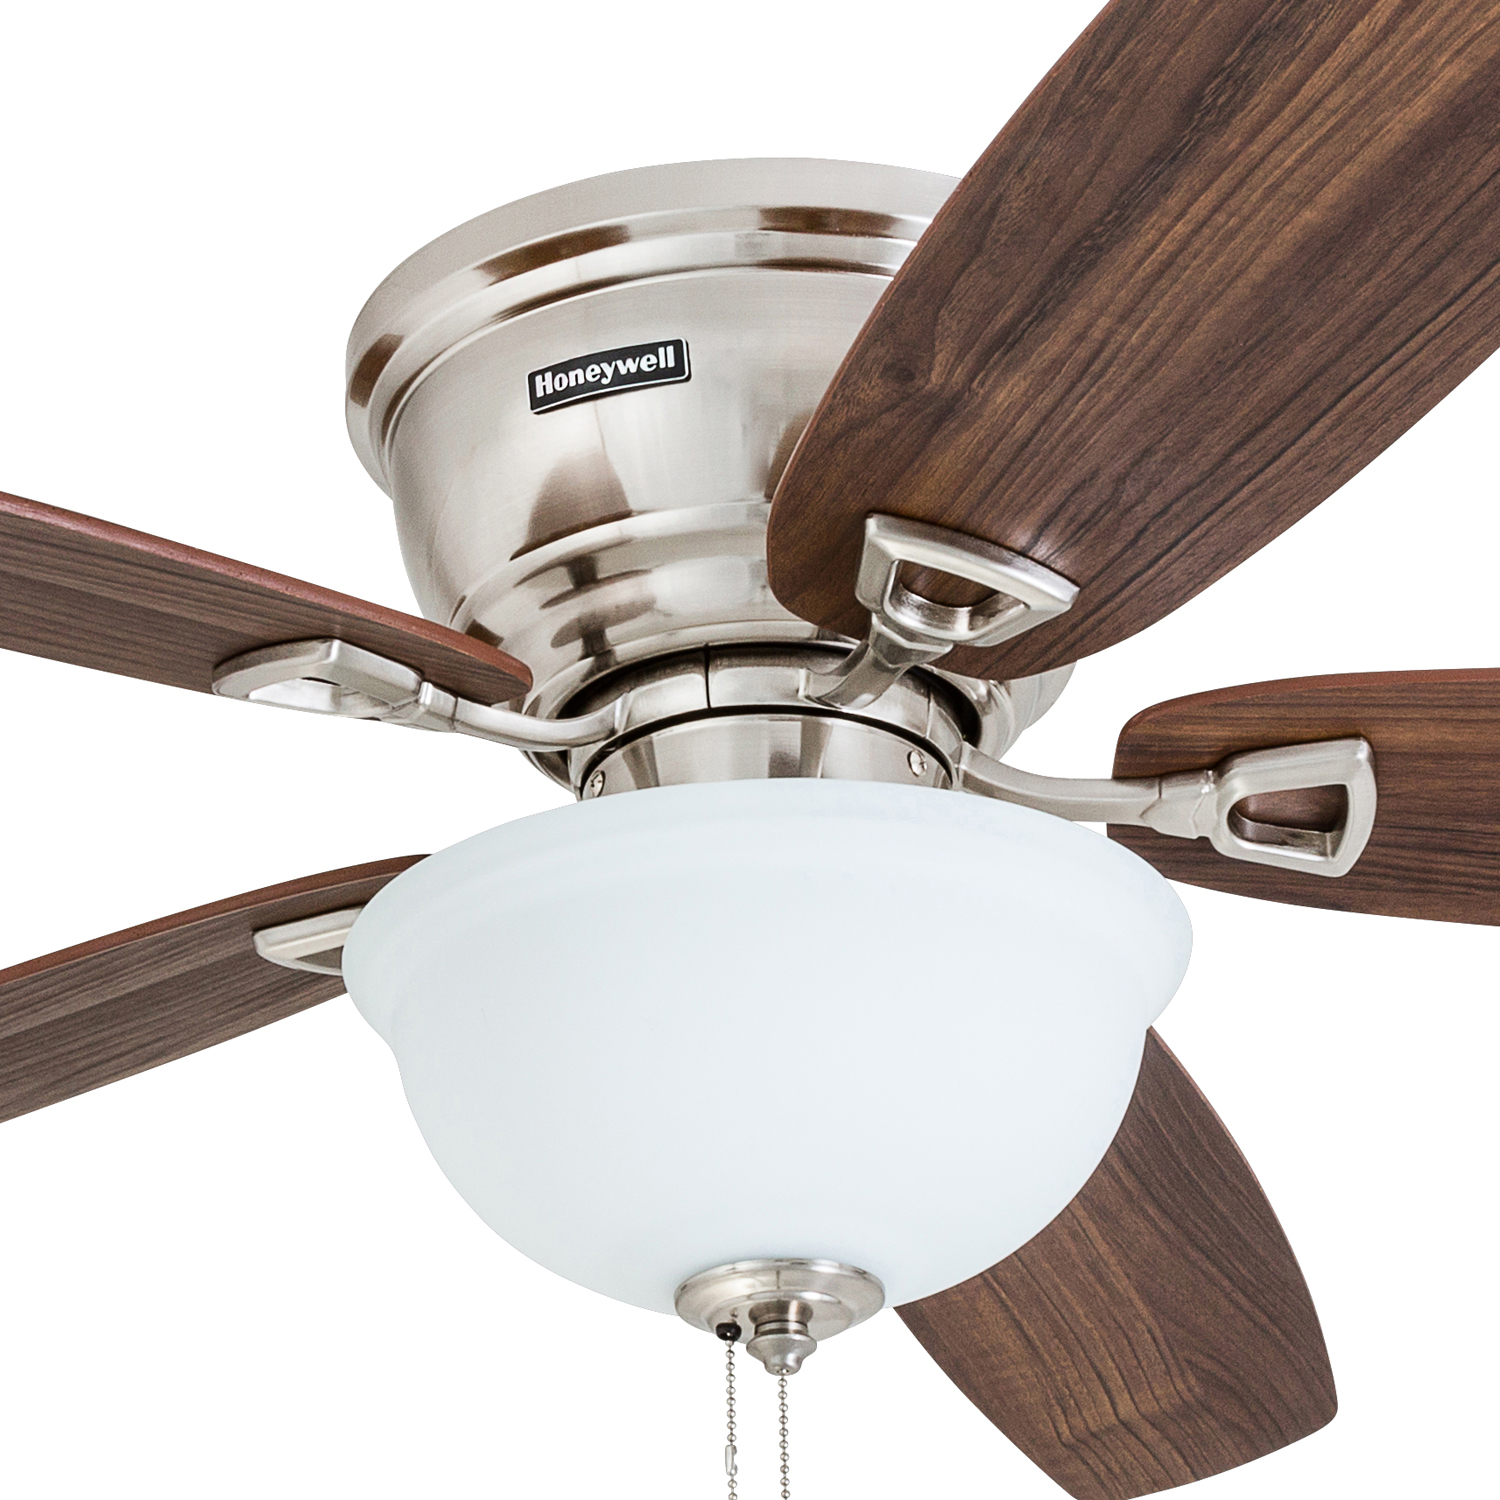 "52"" Honeywell Eastover Ceiling Fan Brushed Nickel Walmart"